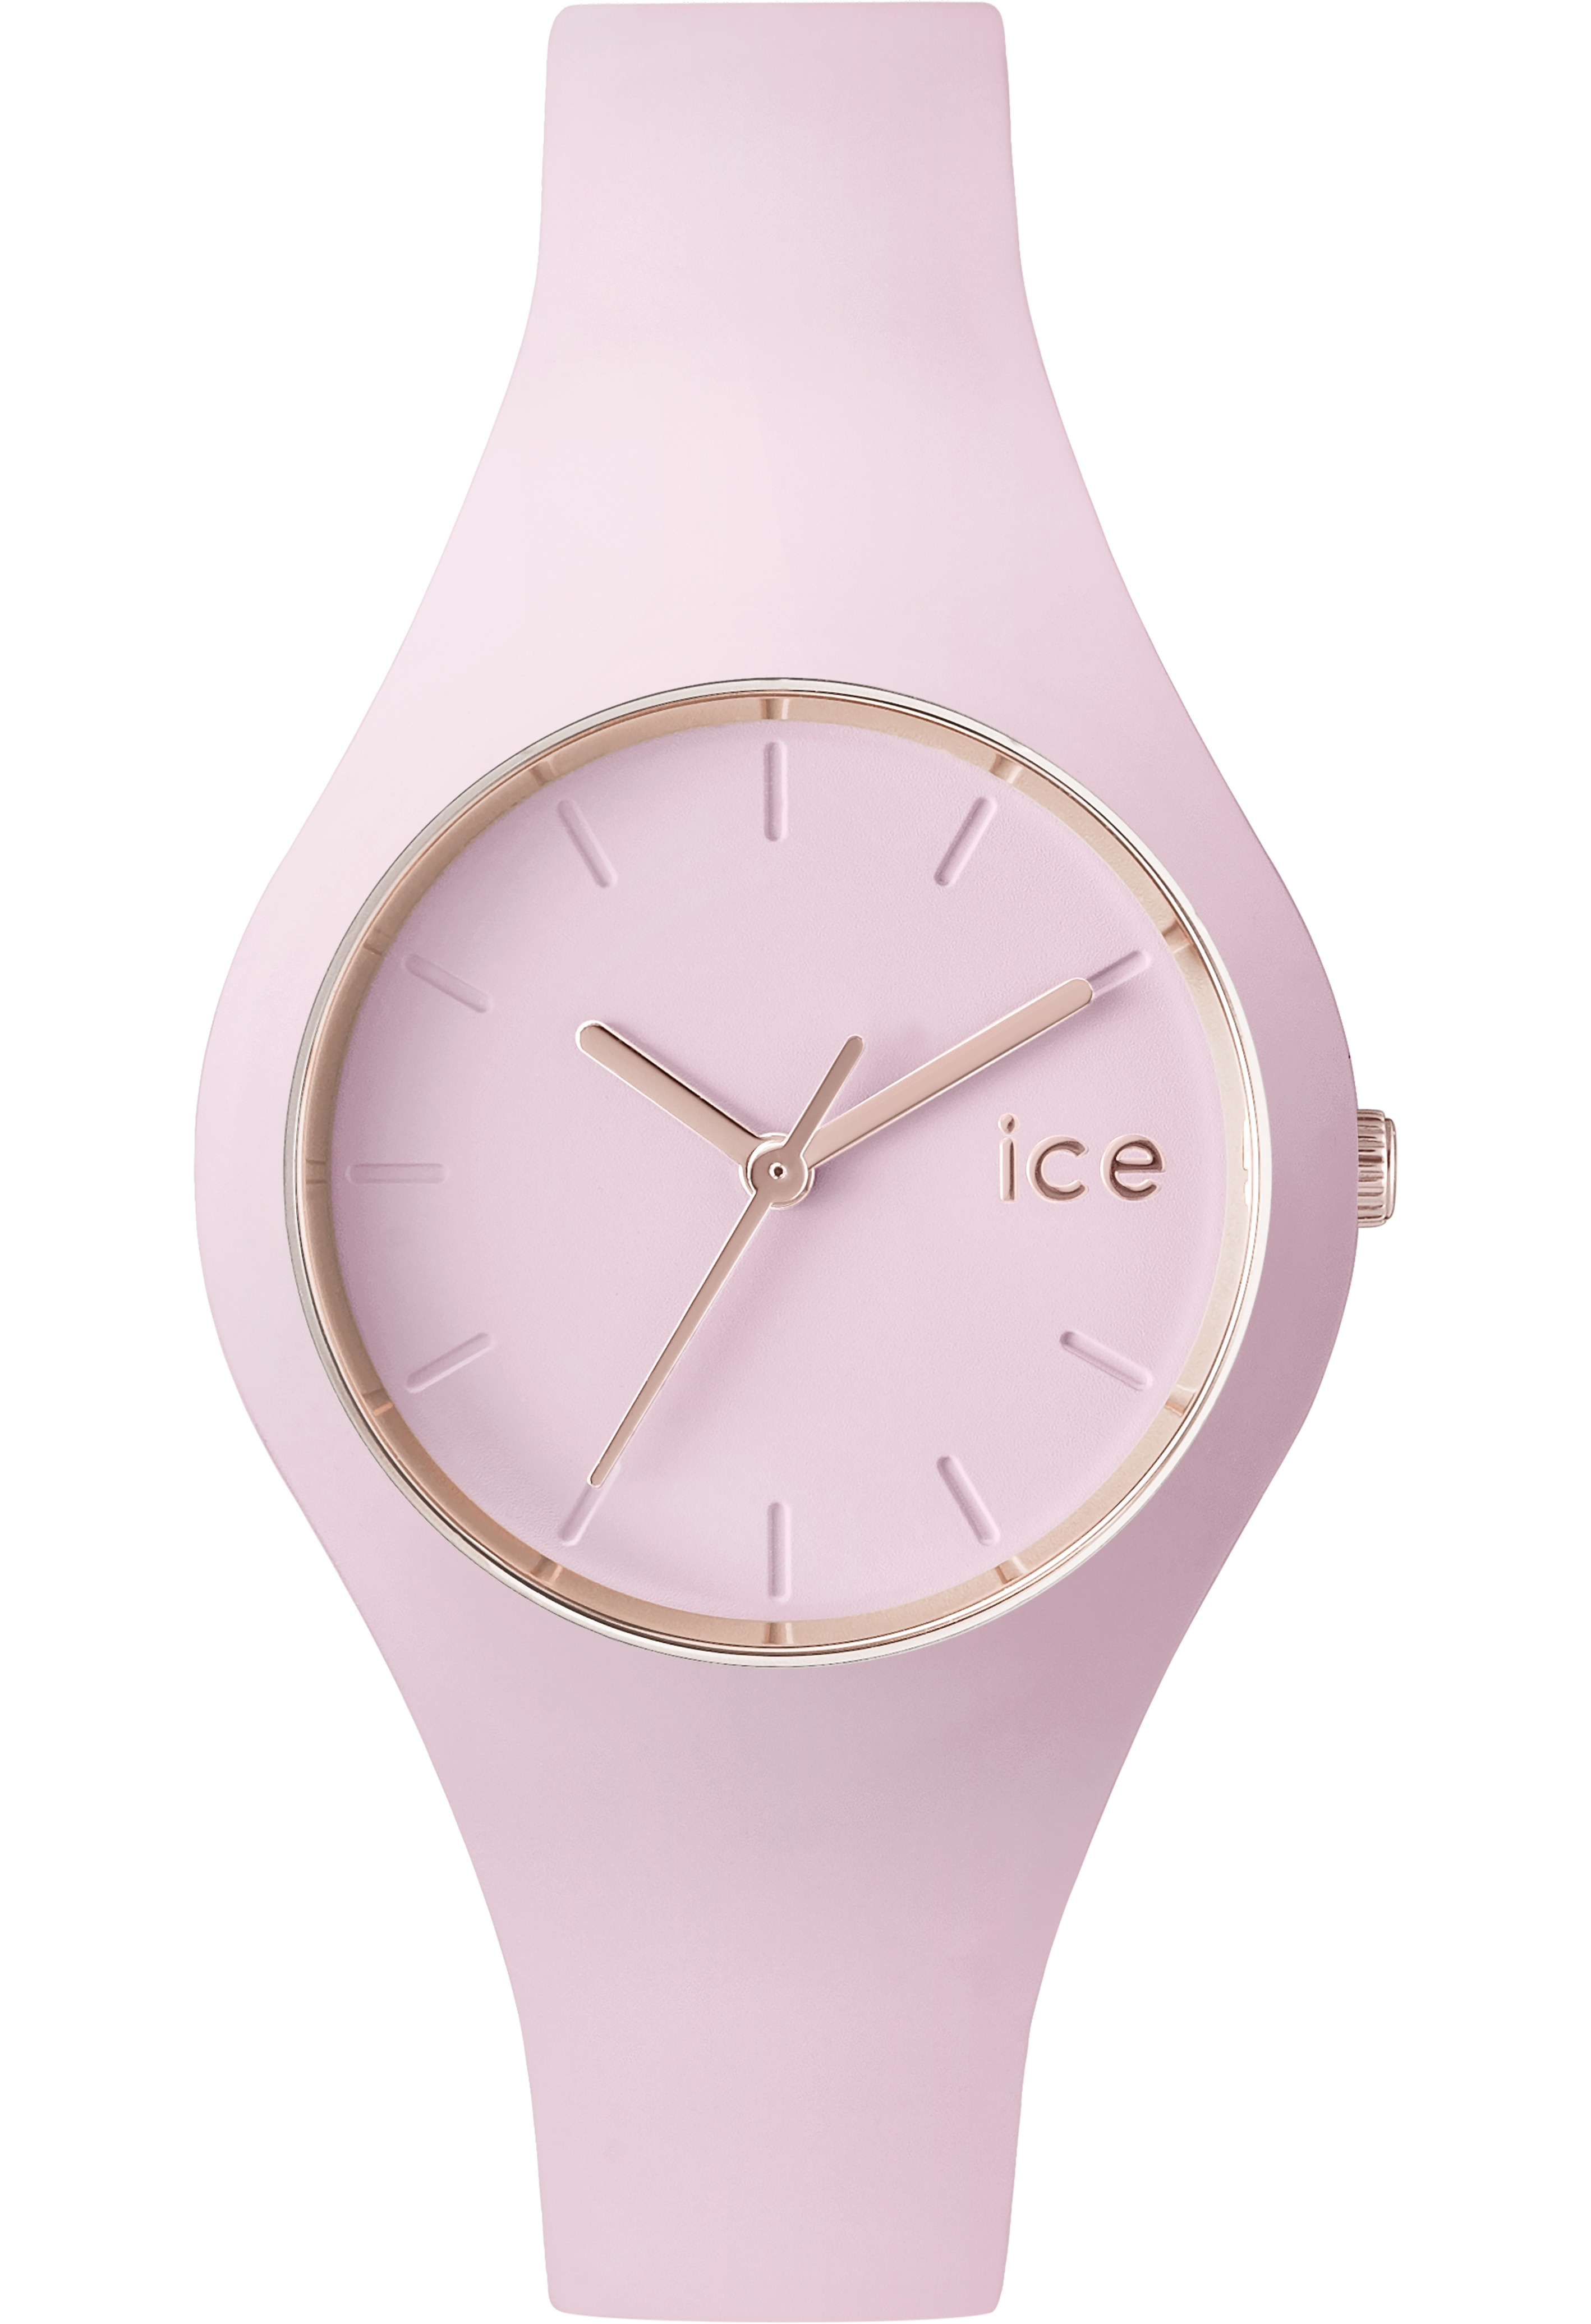 Montre Ice-Watch ICE Glam Pastel - Pink Lady - Small 001065 Doré ... aa4e52fd5a39